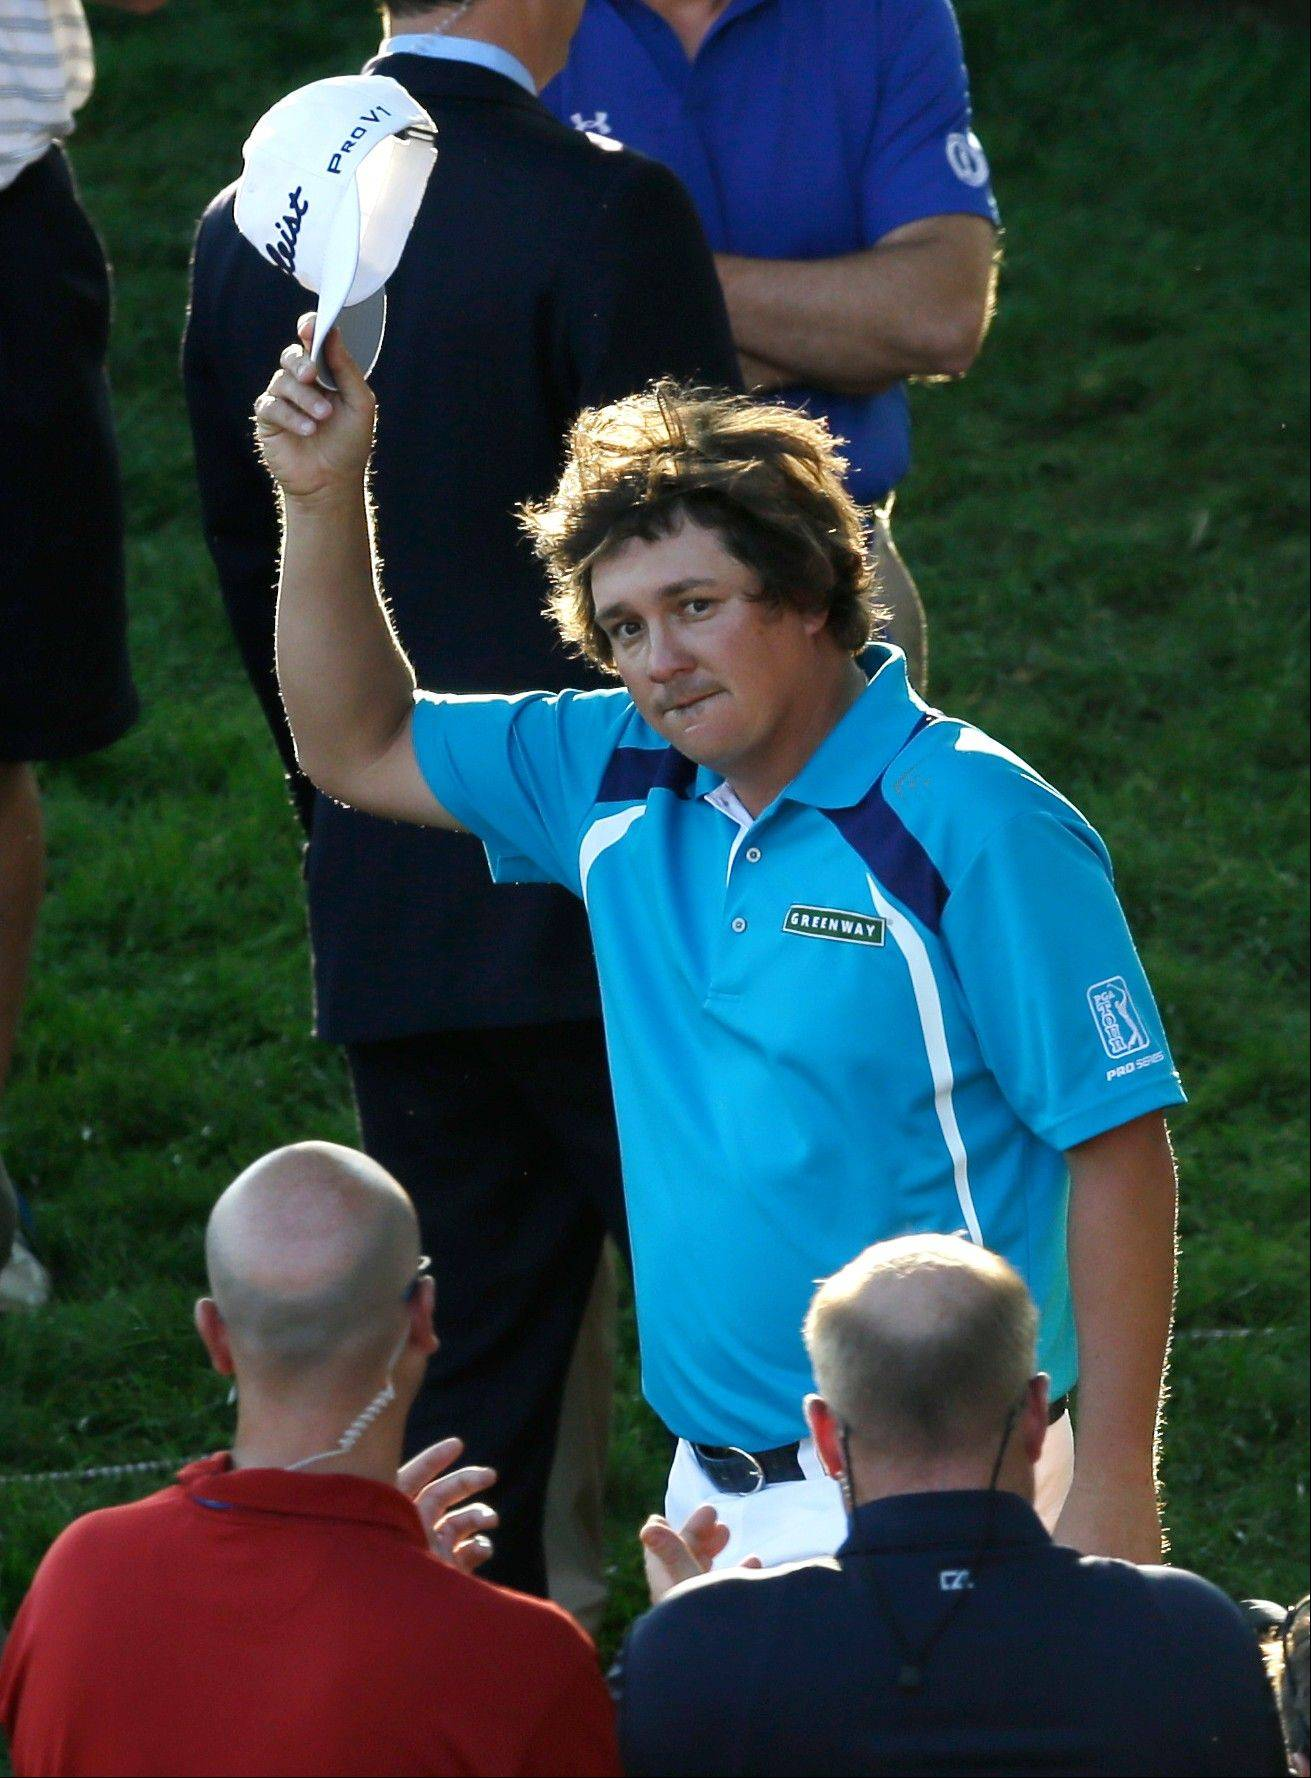 Jason Dufner tips his cap to the crowd after winning his first major, capturing the PGA Championship by 2 strokes over Jim Furyk.